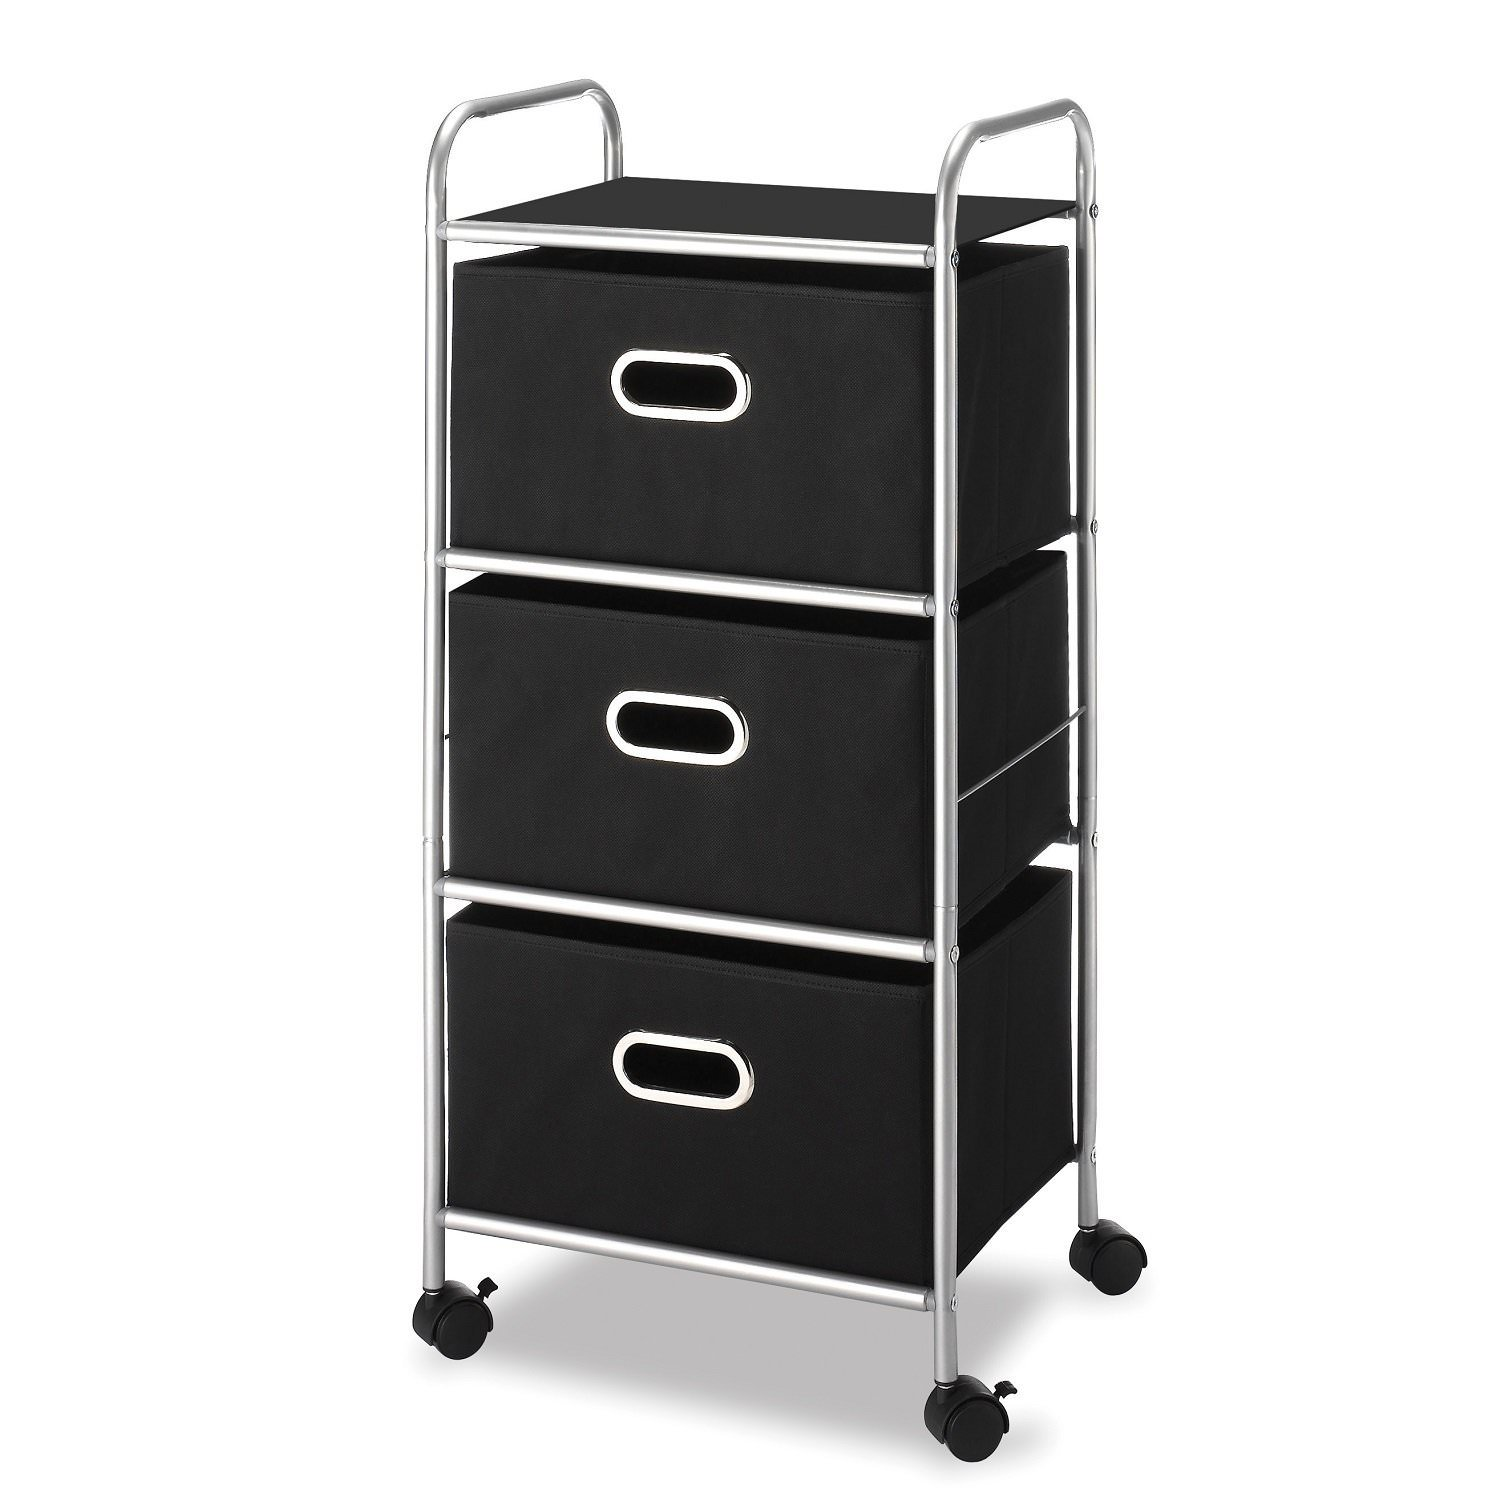 Whitmor 3 Drawer Chest Cart Black & Silver